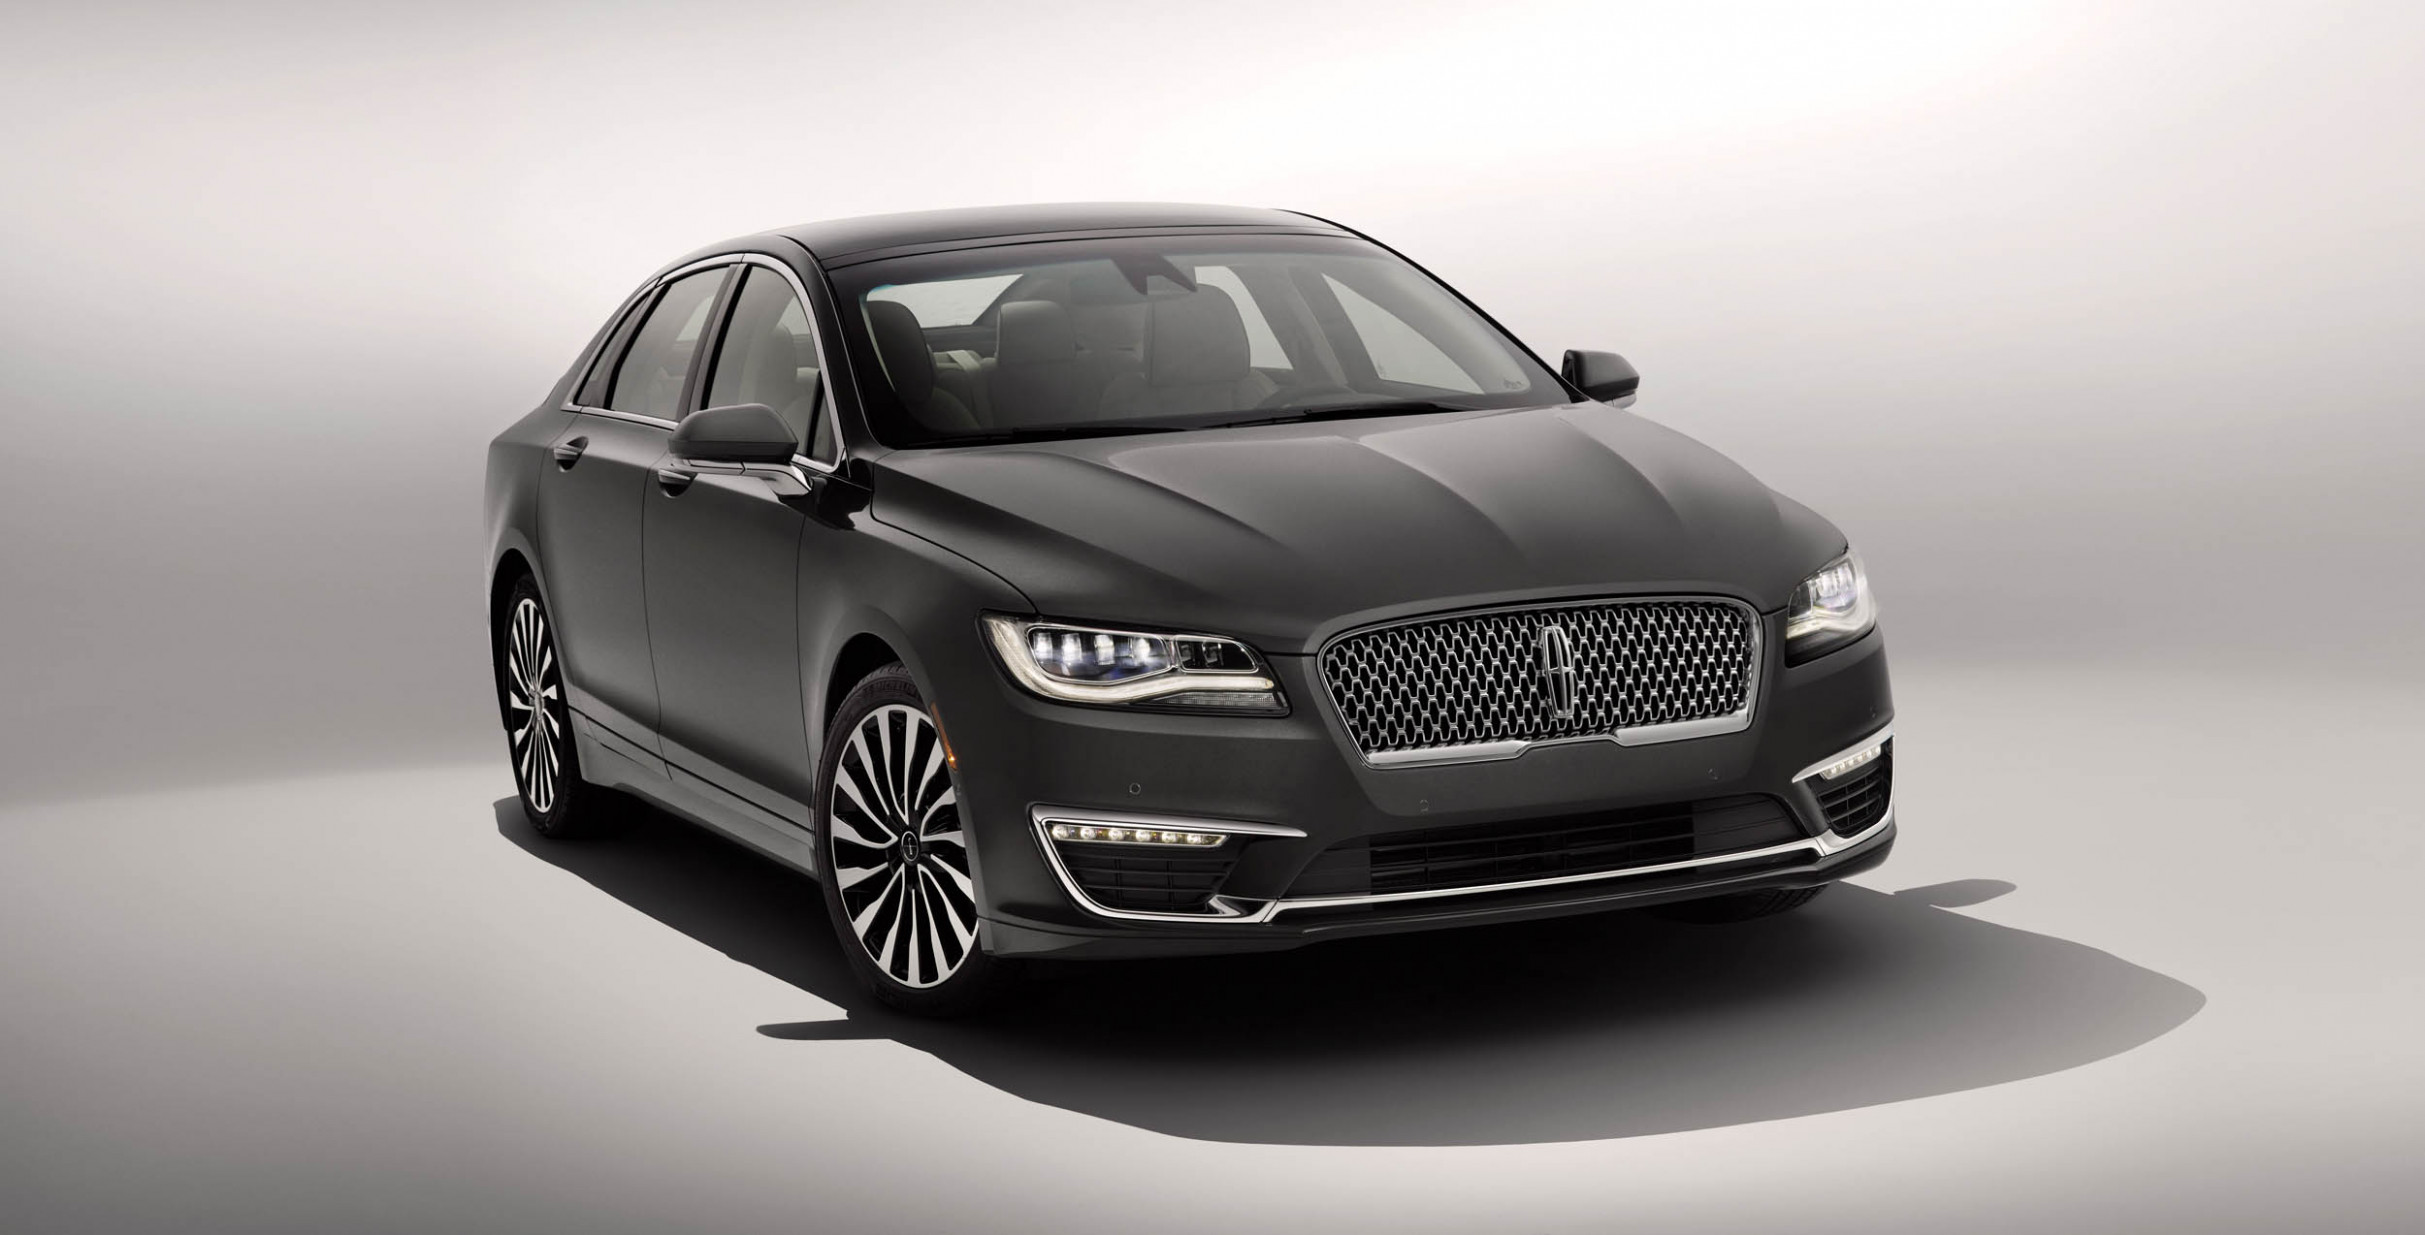 New Lincoln Zephyr to replace MKZ?   2020 Lincoln Zephyr